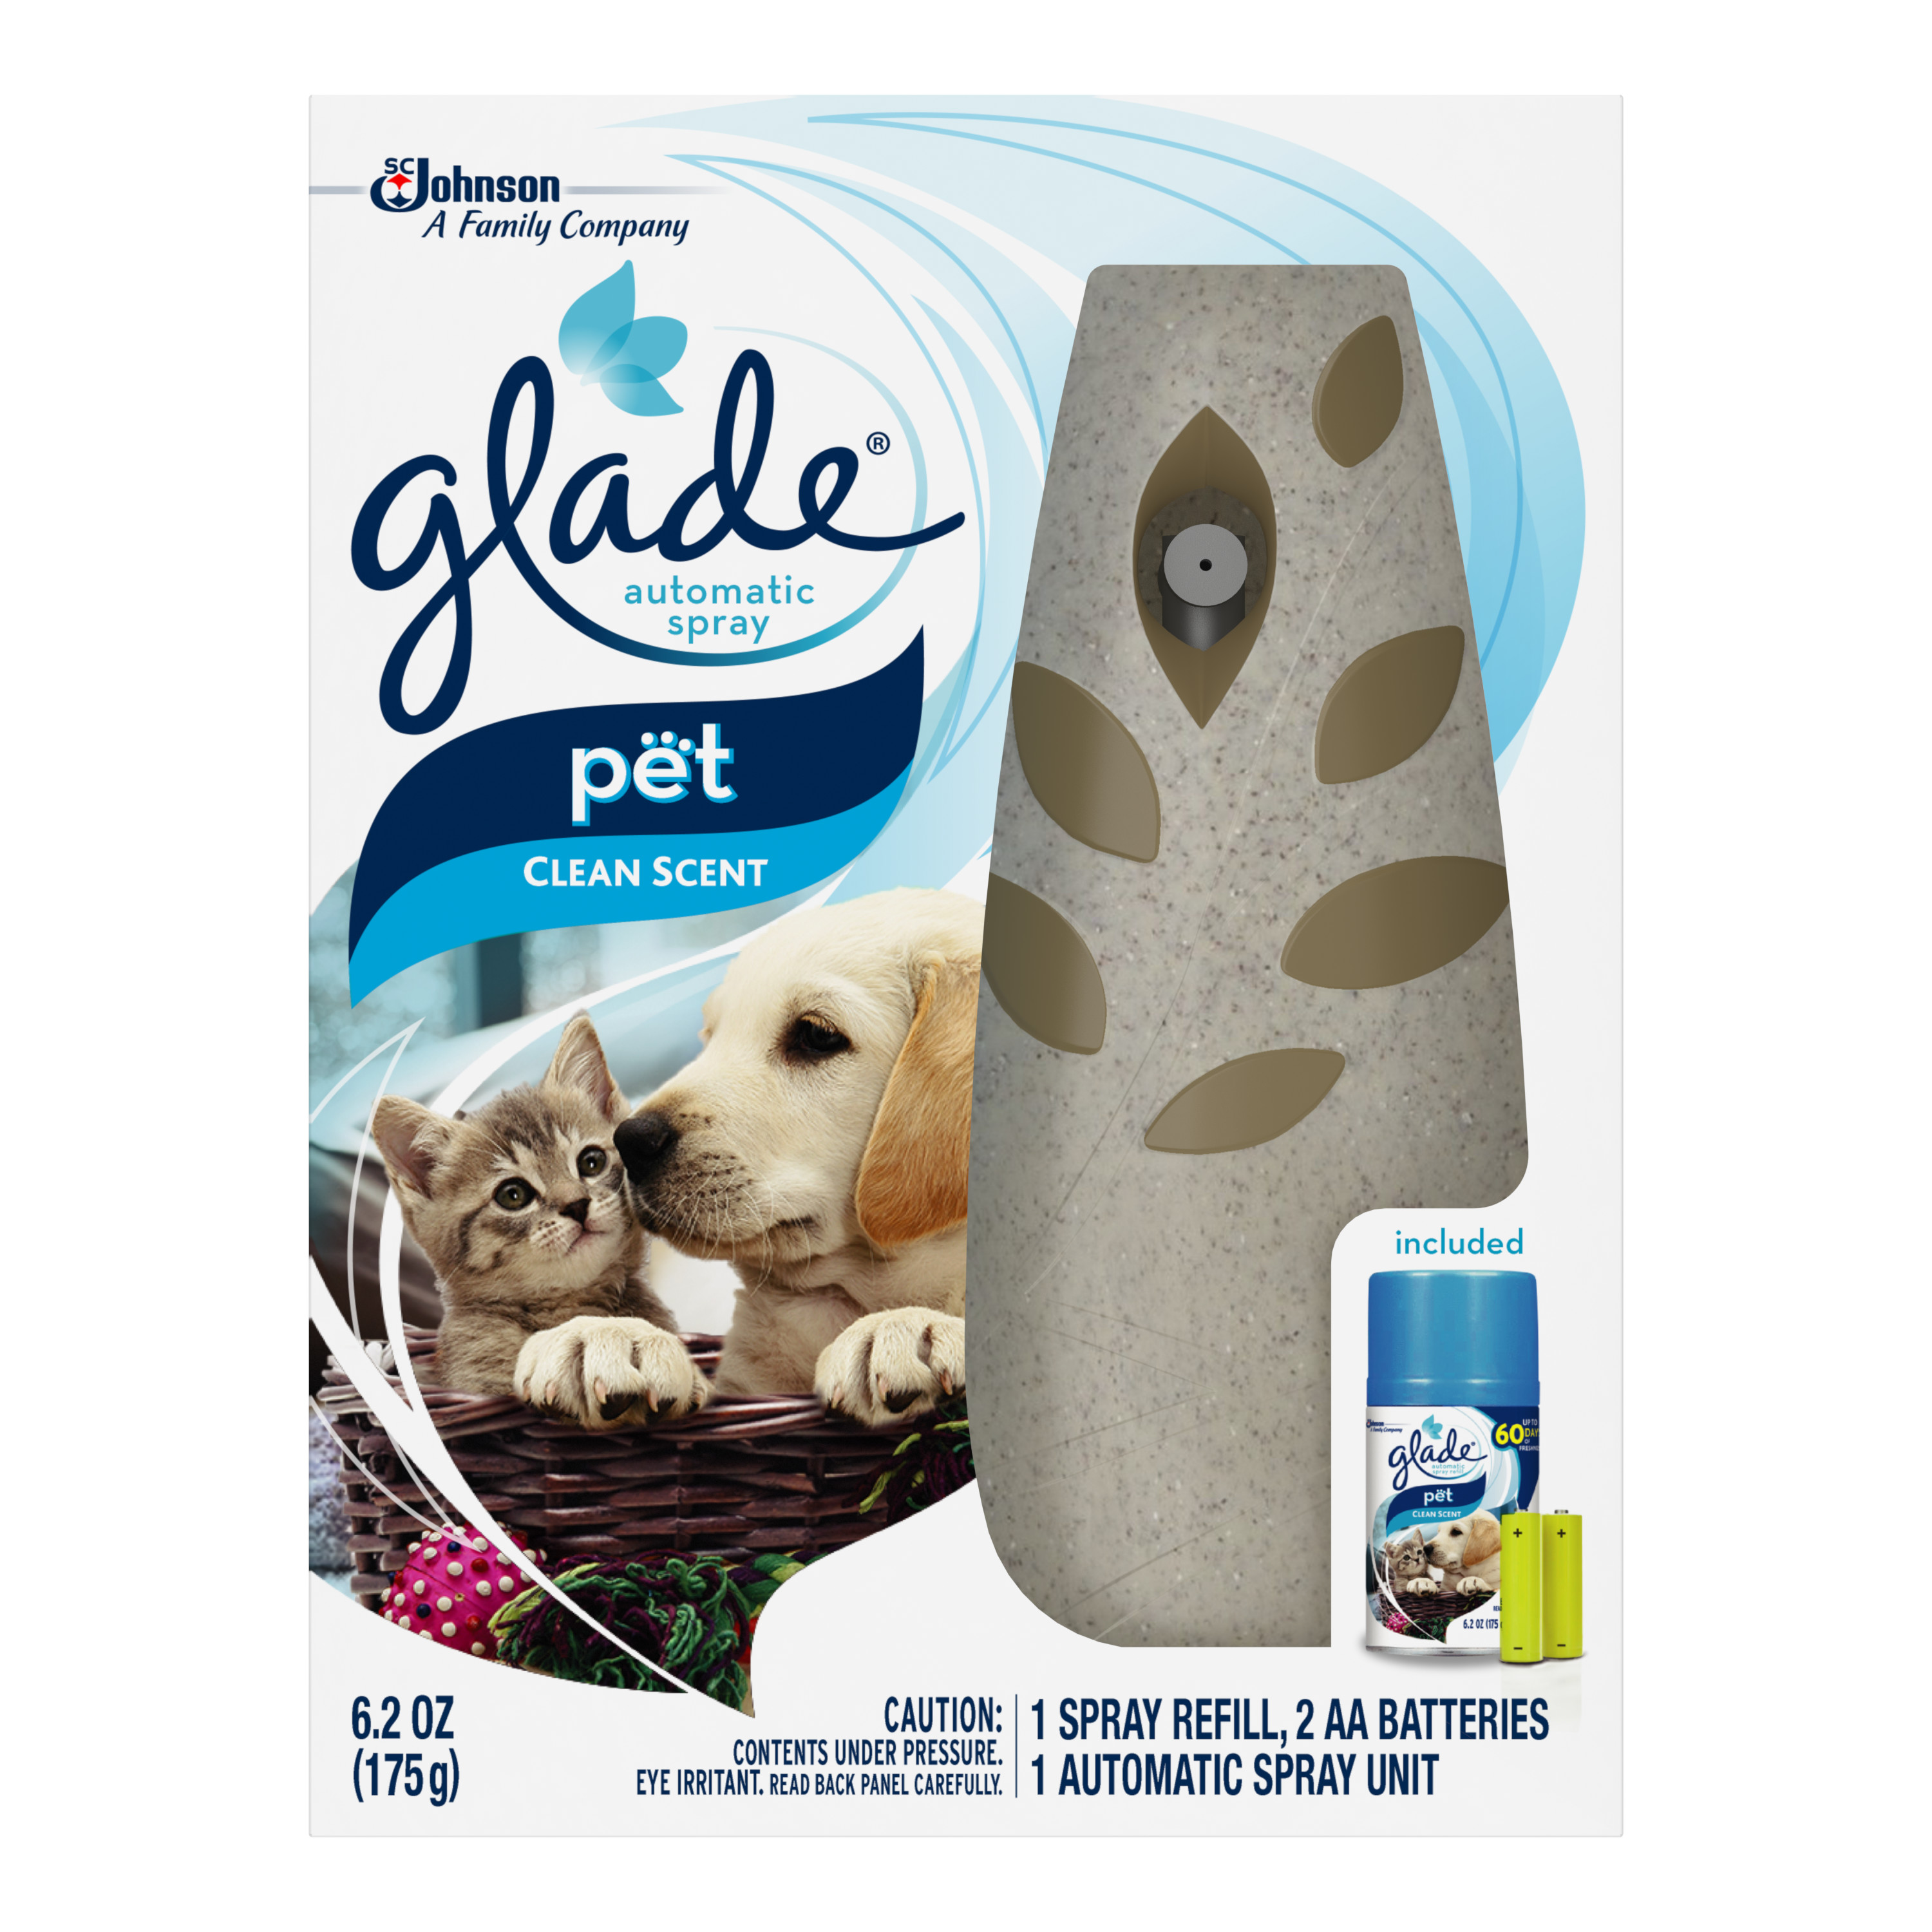 Glade Automatic Spray Air Freshener Starter Kit, Pet Clean Scent, 6.2 Ounces